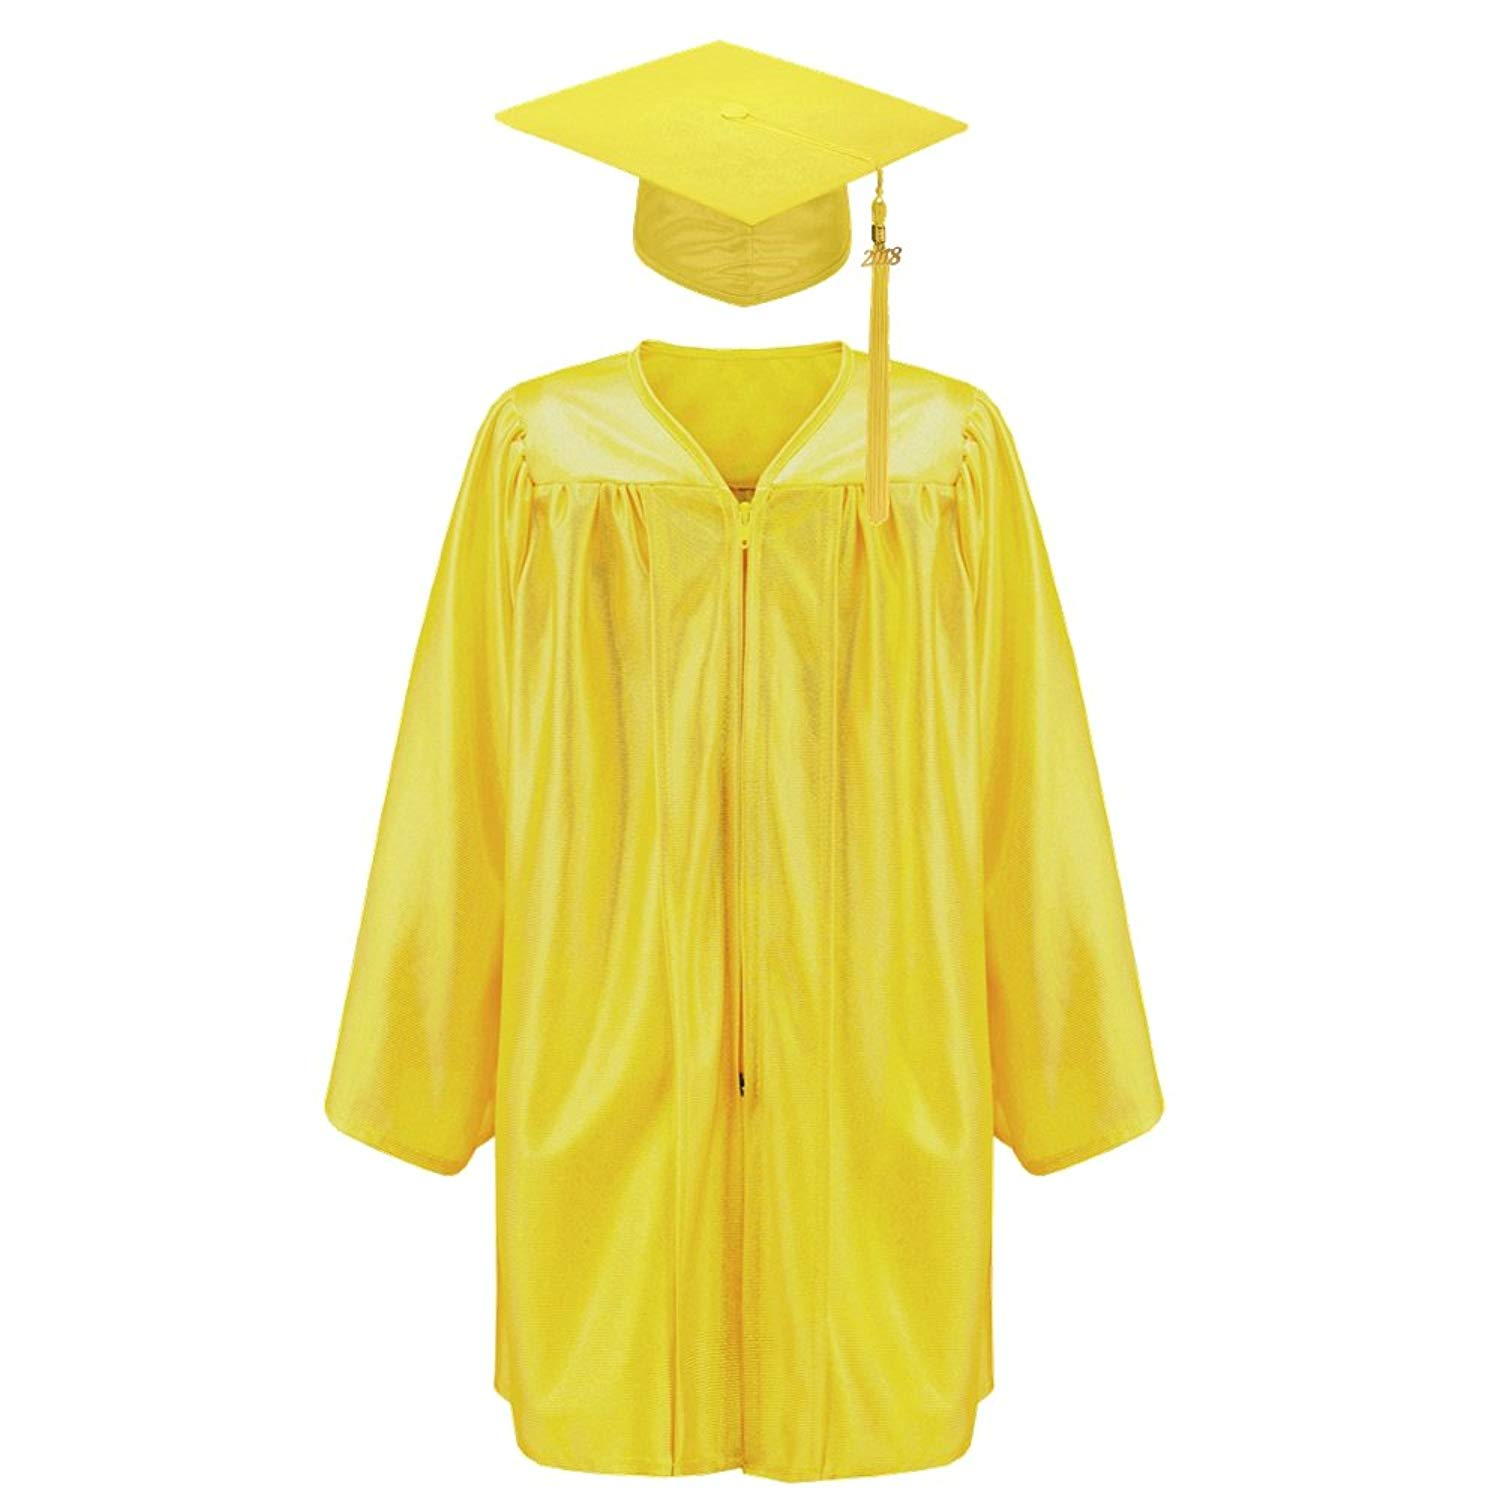 Robe Depot Unisex Shiny Kindergarten Graduation Gown Cap Tassel 2018 Package, Gold,L